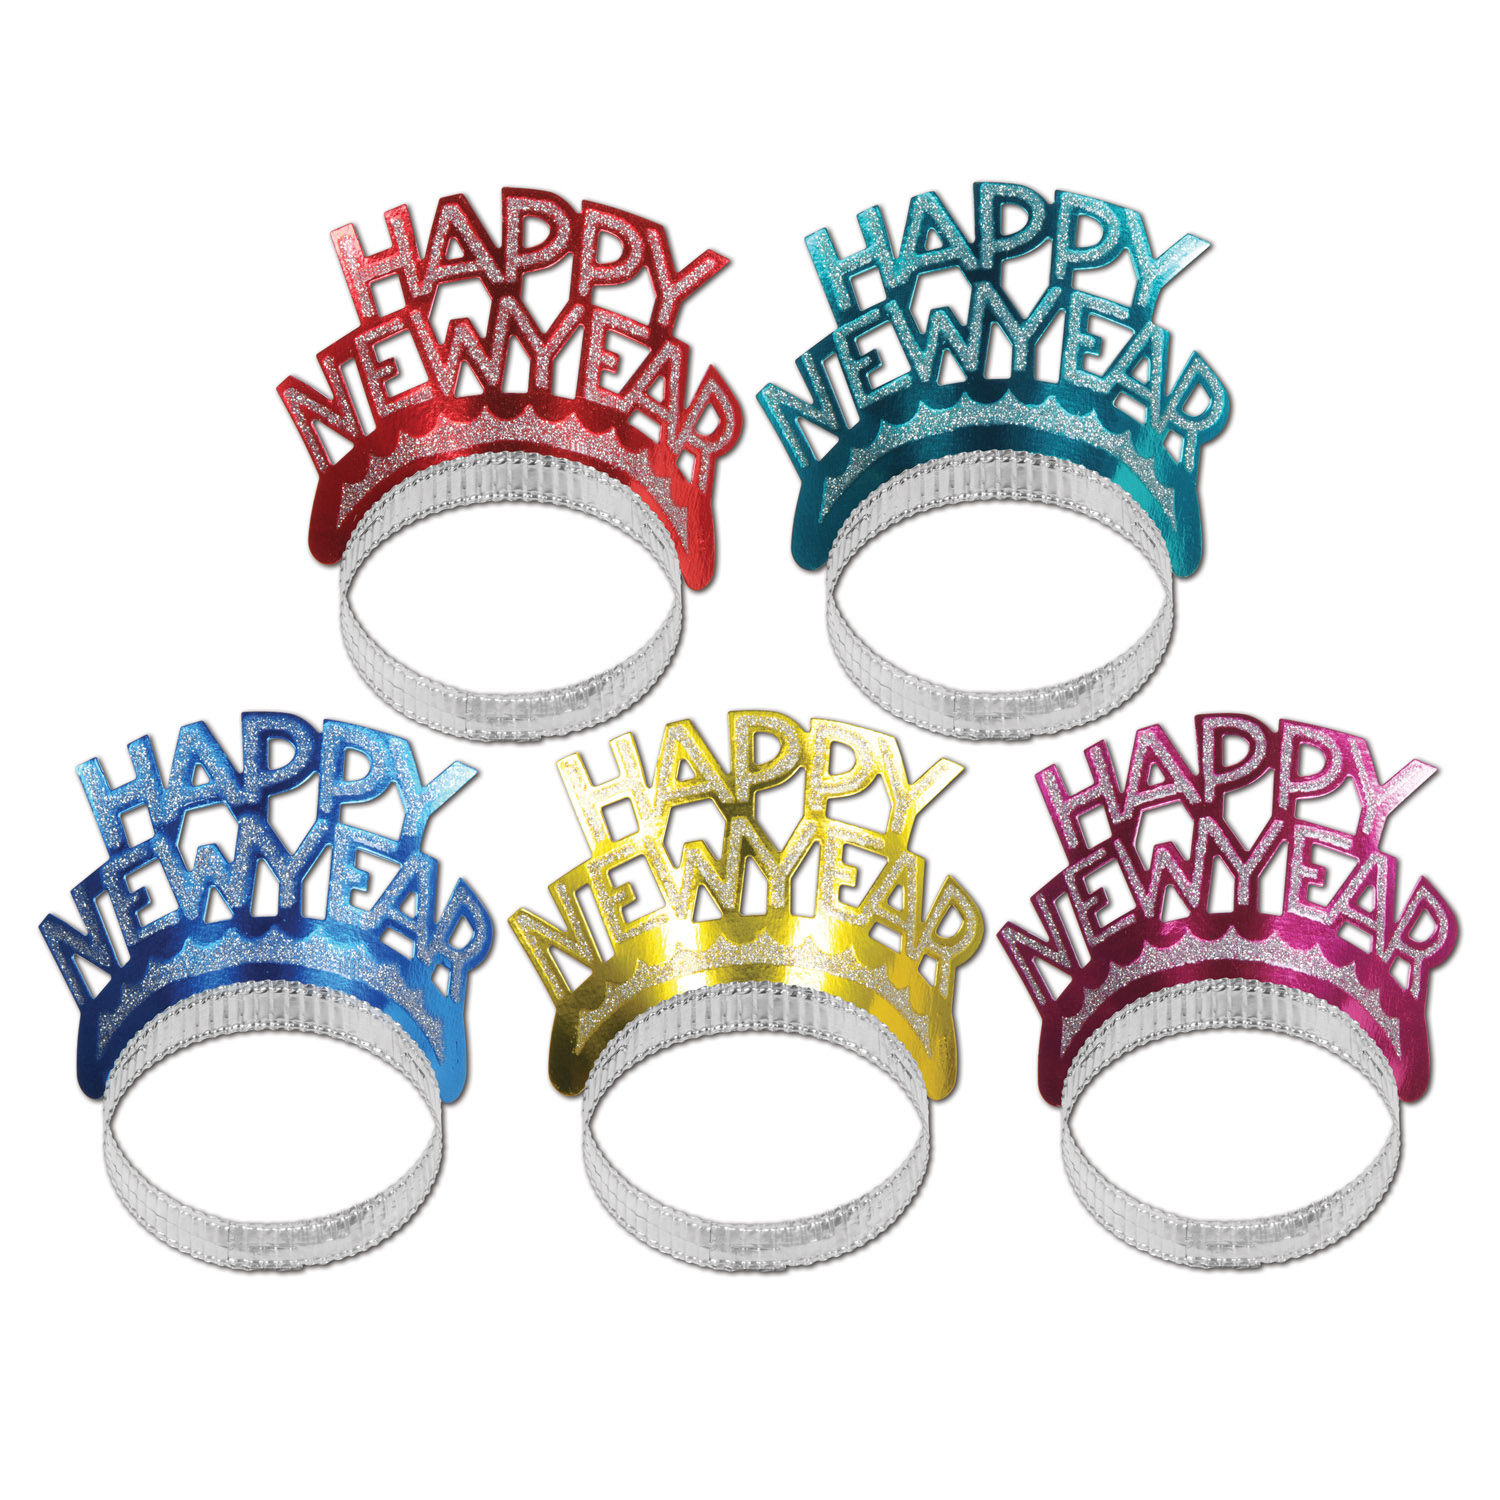 Happy New Year Tiaras asstd